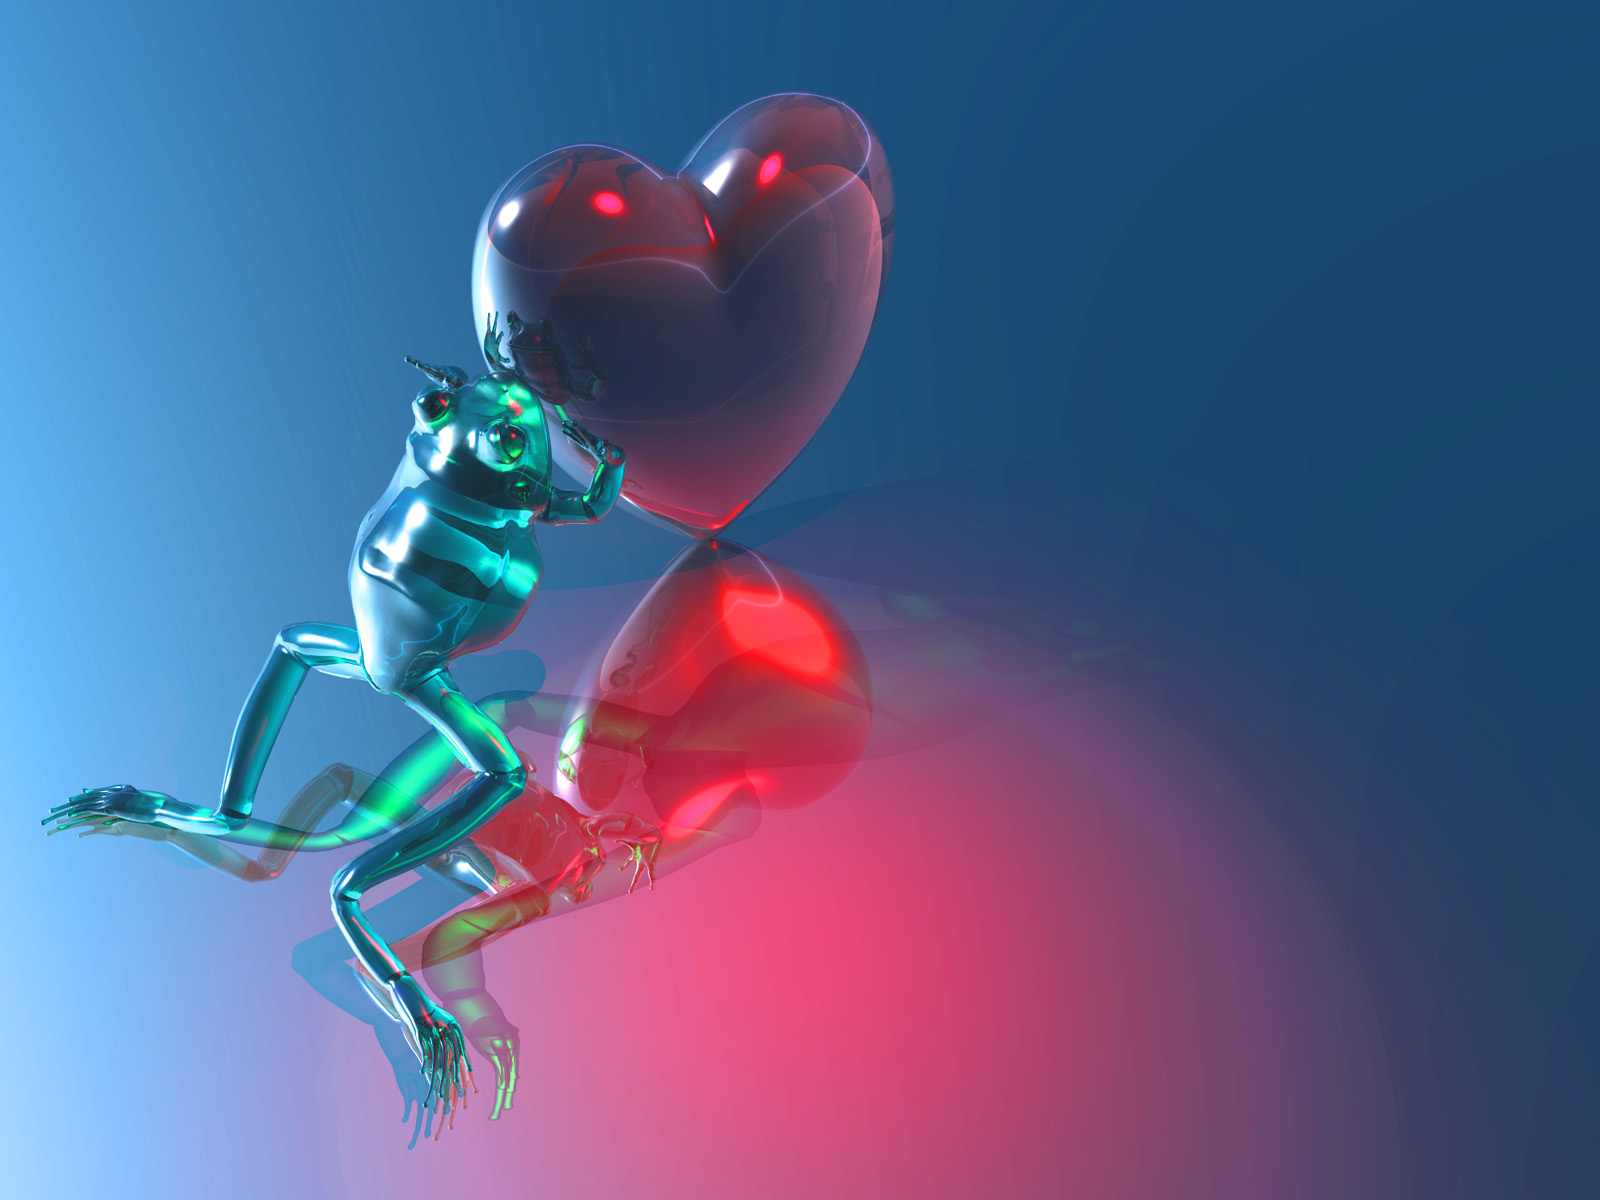 3D Heart Valentine Wallpapers FreeBest Wallpapers HD Backgrounds 1600x1200